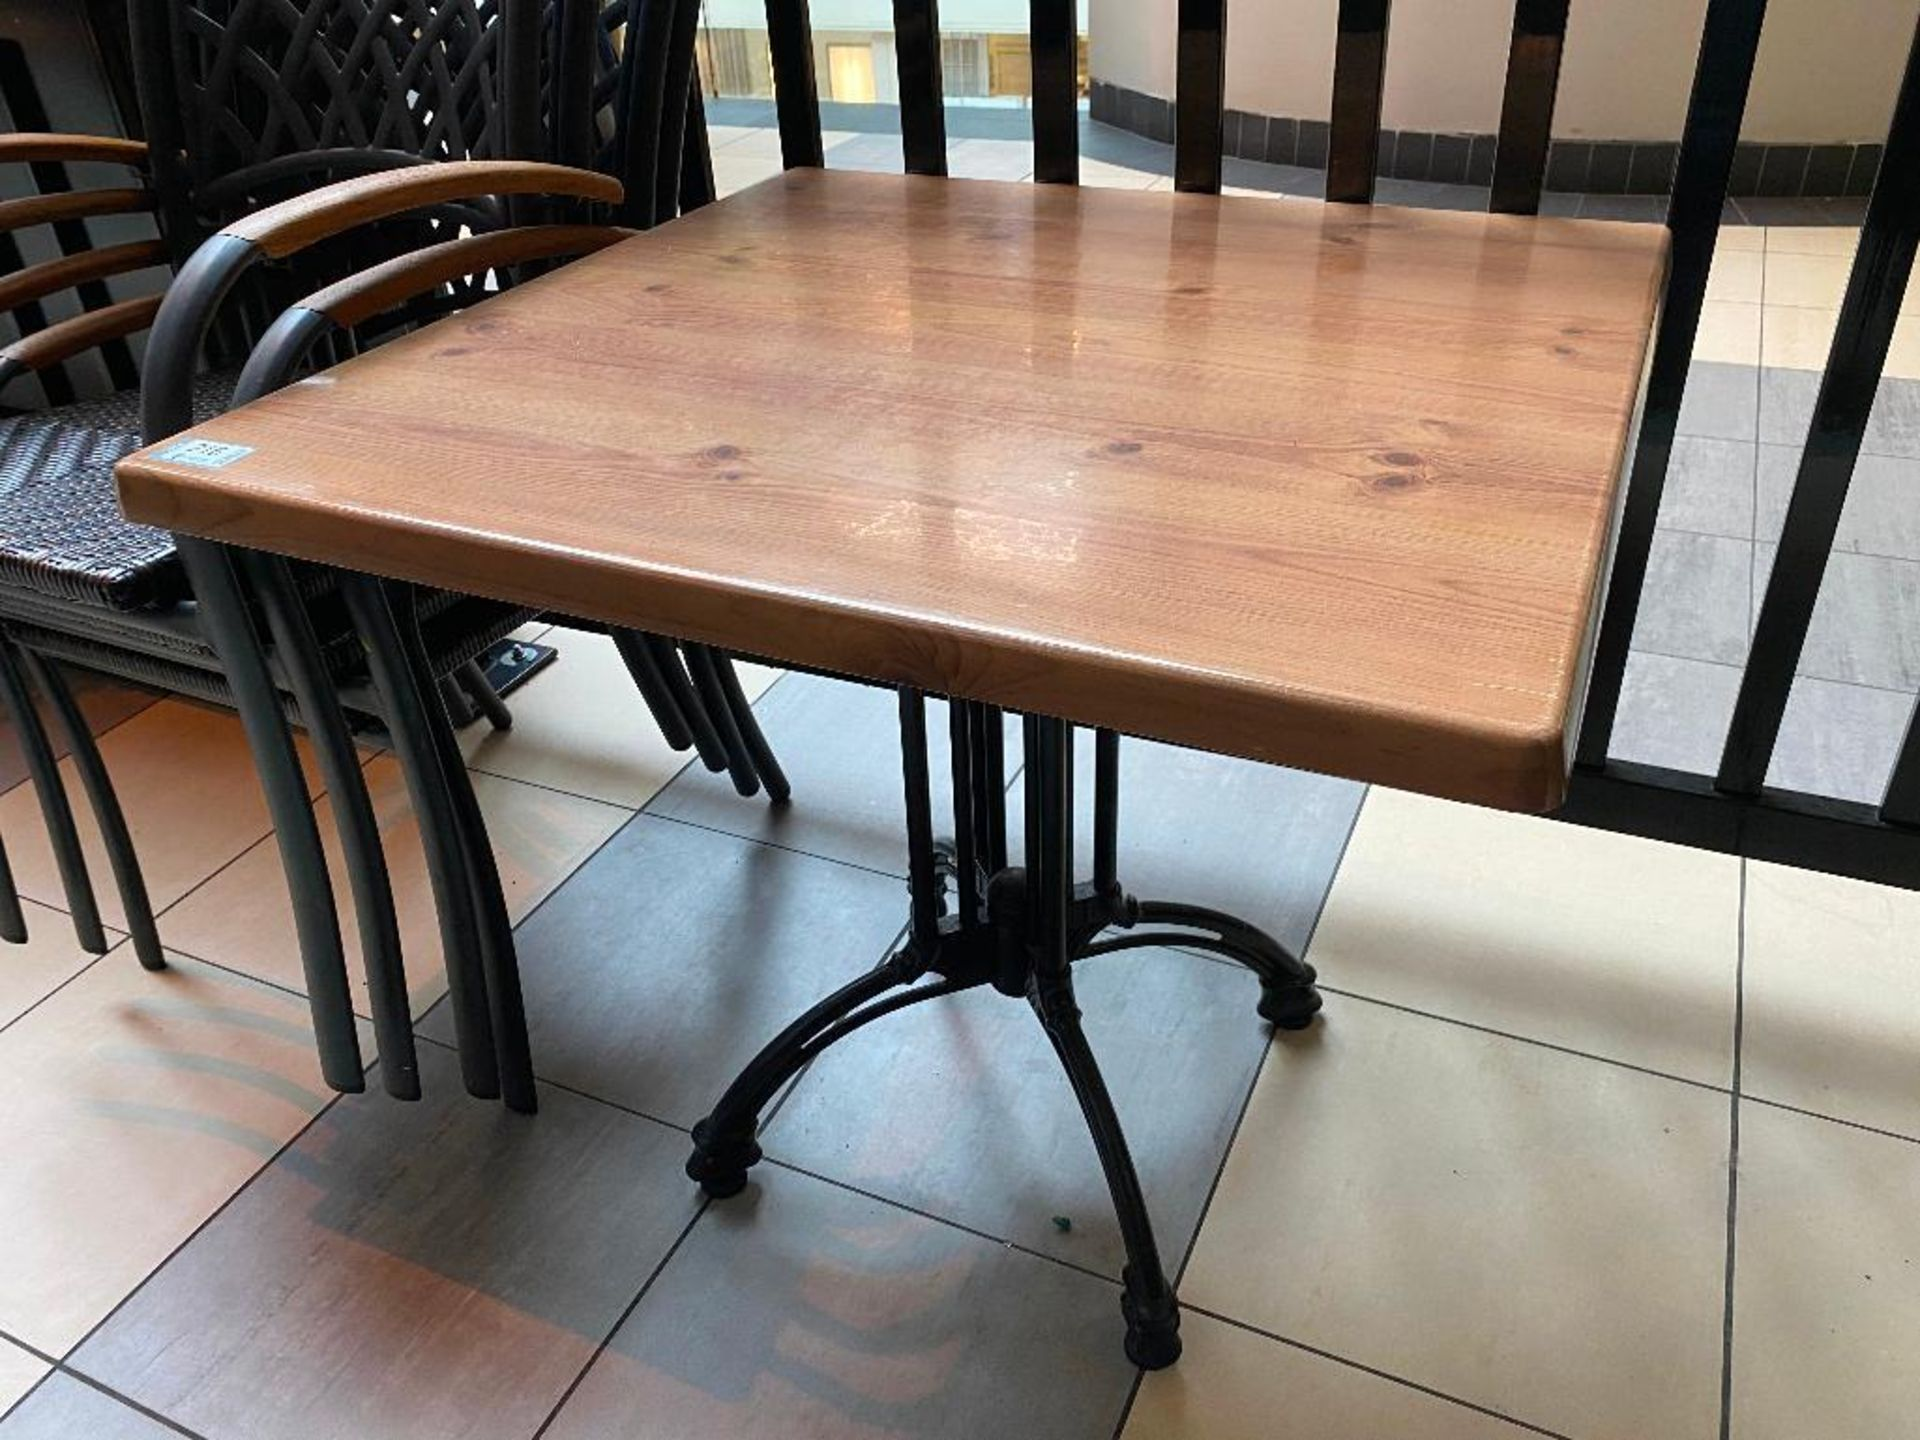 """TOPALIT 31"""" X 31"""" PATIO TABLE WITH 4 CHAIRS - Image 3 of 3"""